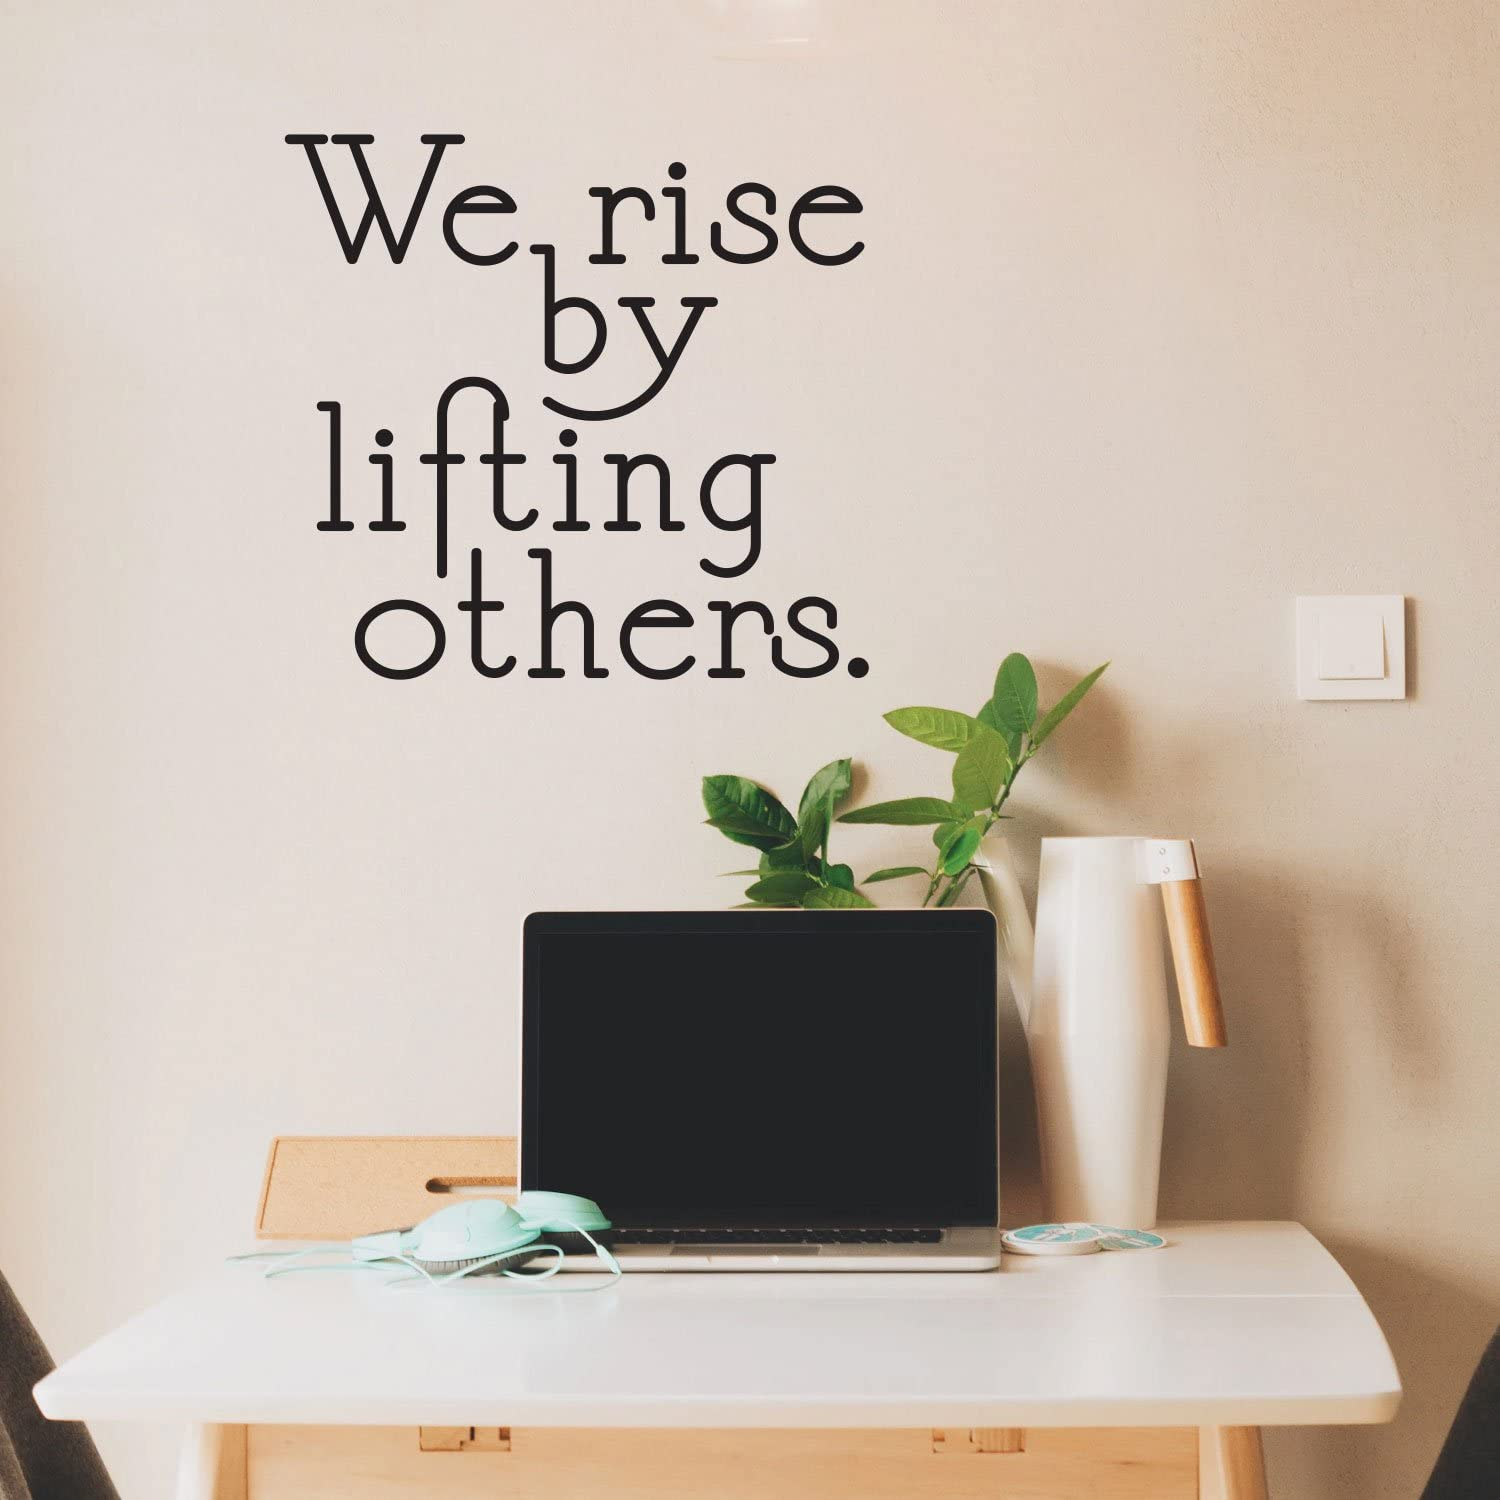 "We Rise by Lifting Others - Inspirational Quotes Wall Art Vinyl Decal - 21"" x 23"" - Living Room Motivational Wall Art Decal - Life Quotes Vinyl Sticker Wall Decor"